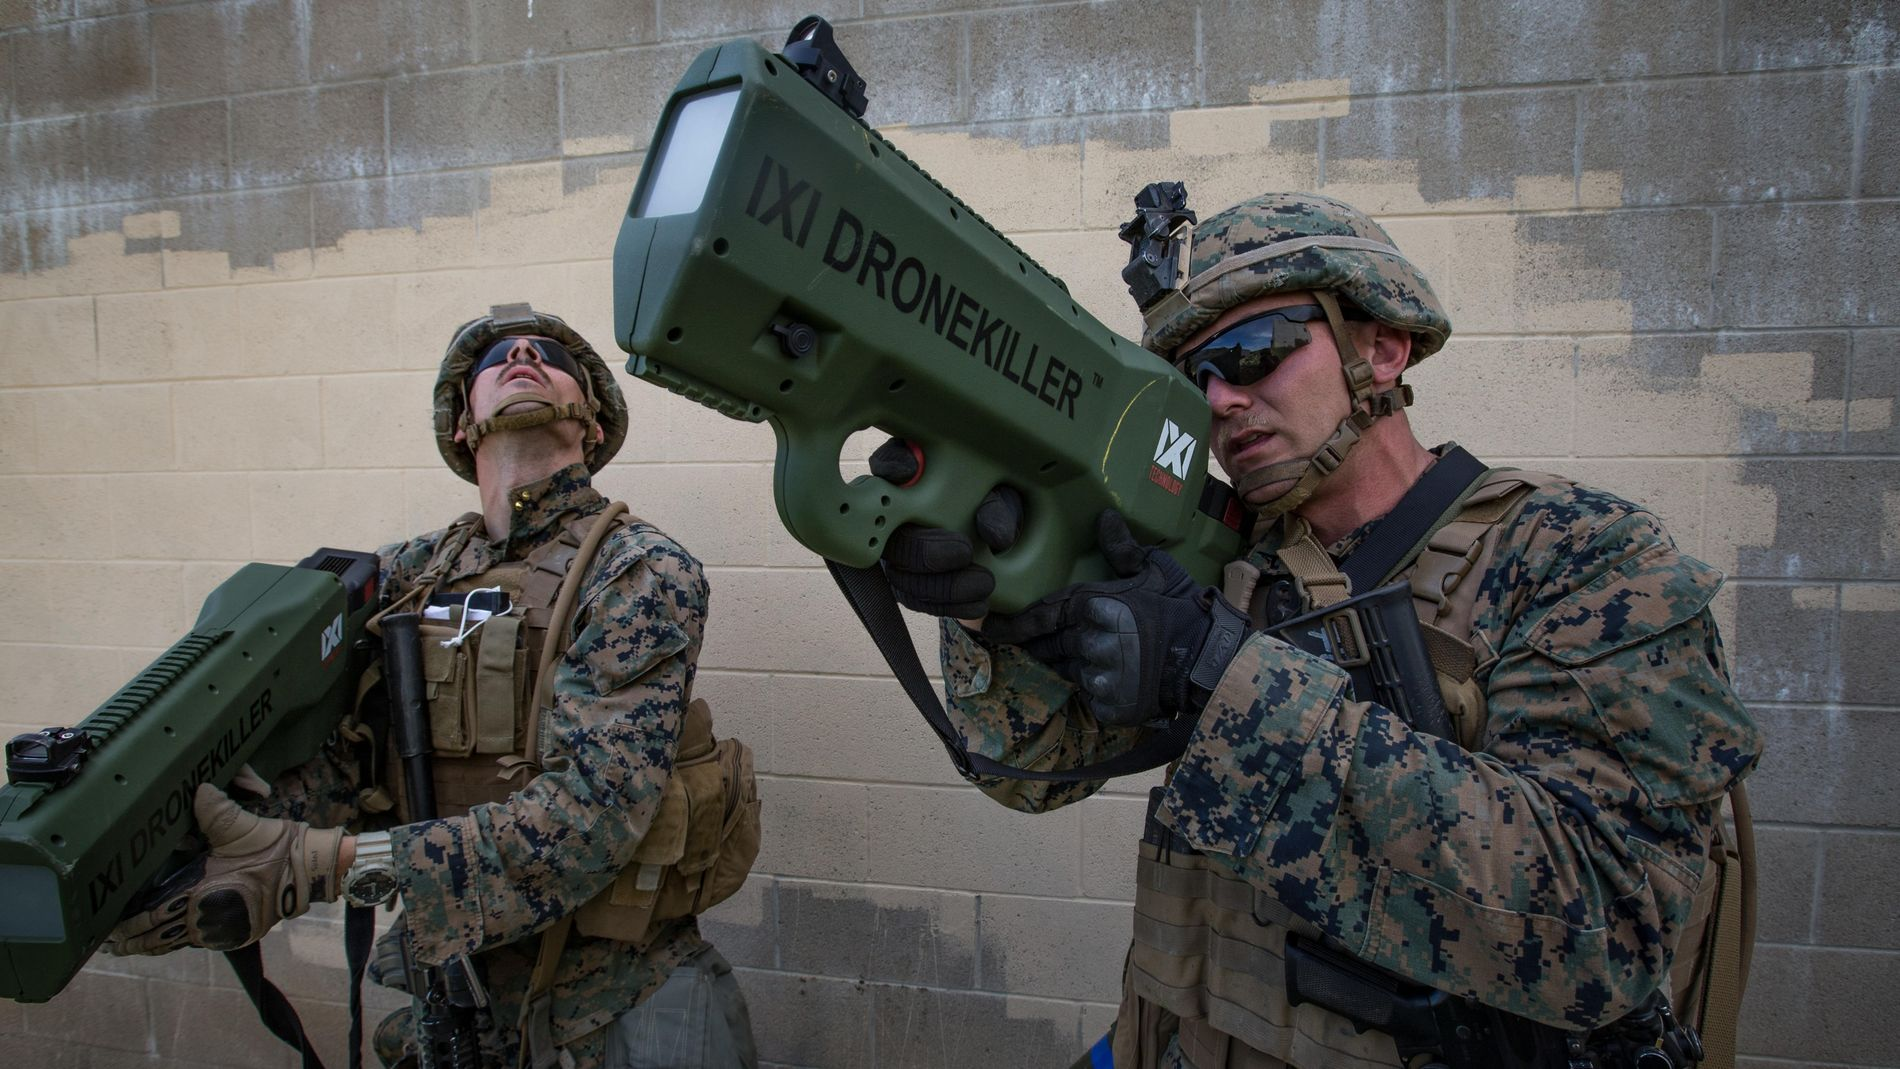 U.S. Marine Corps Lance Cpl. Briar Purty tests IXI Drone Killer during a training exercise in ...